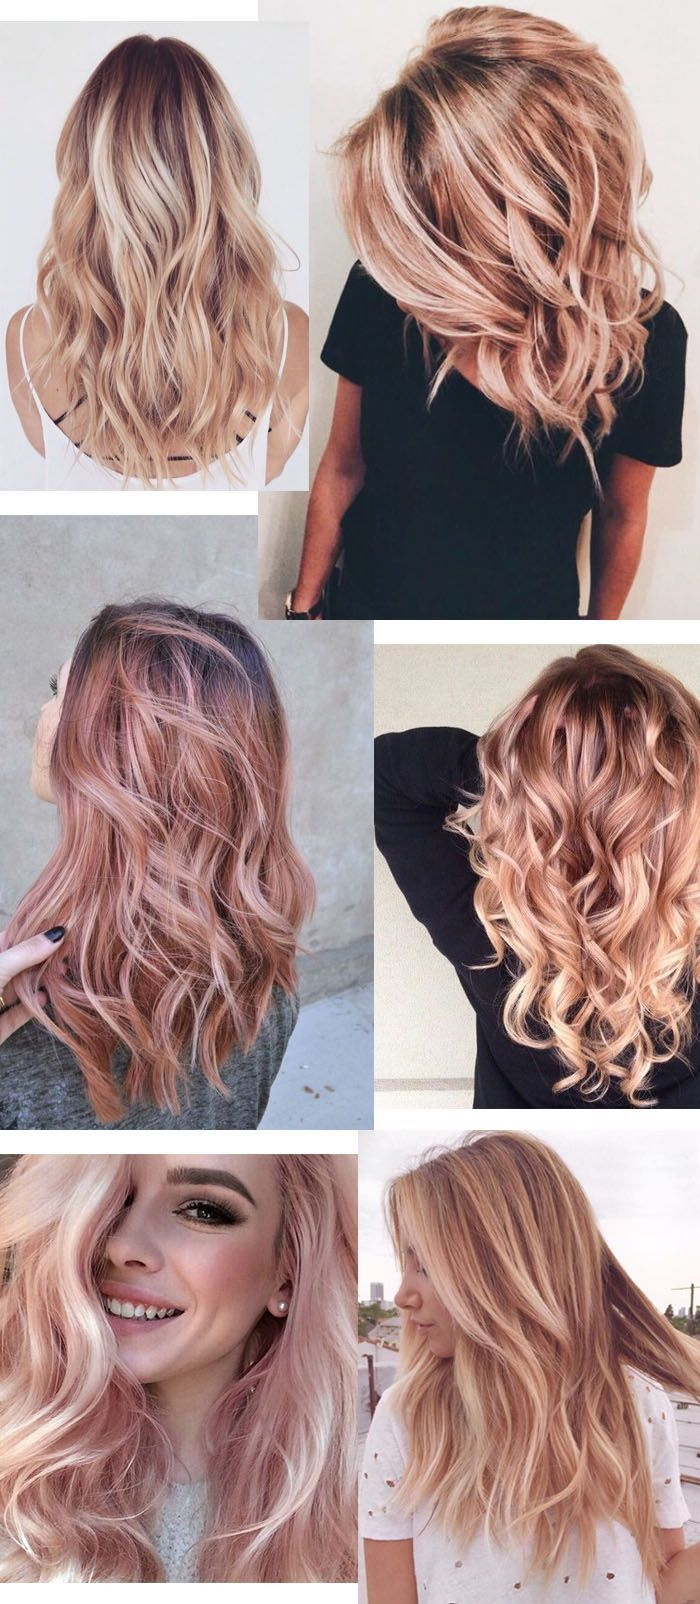 Rose Gold Nos Cabelos Hair Pinterest Coiffure Cheveux And